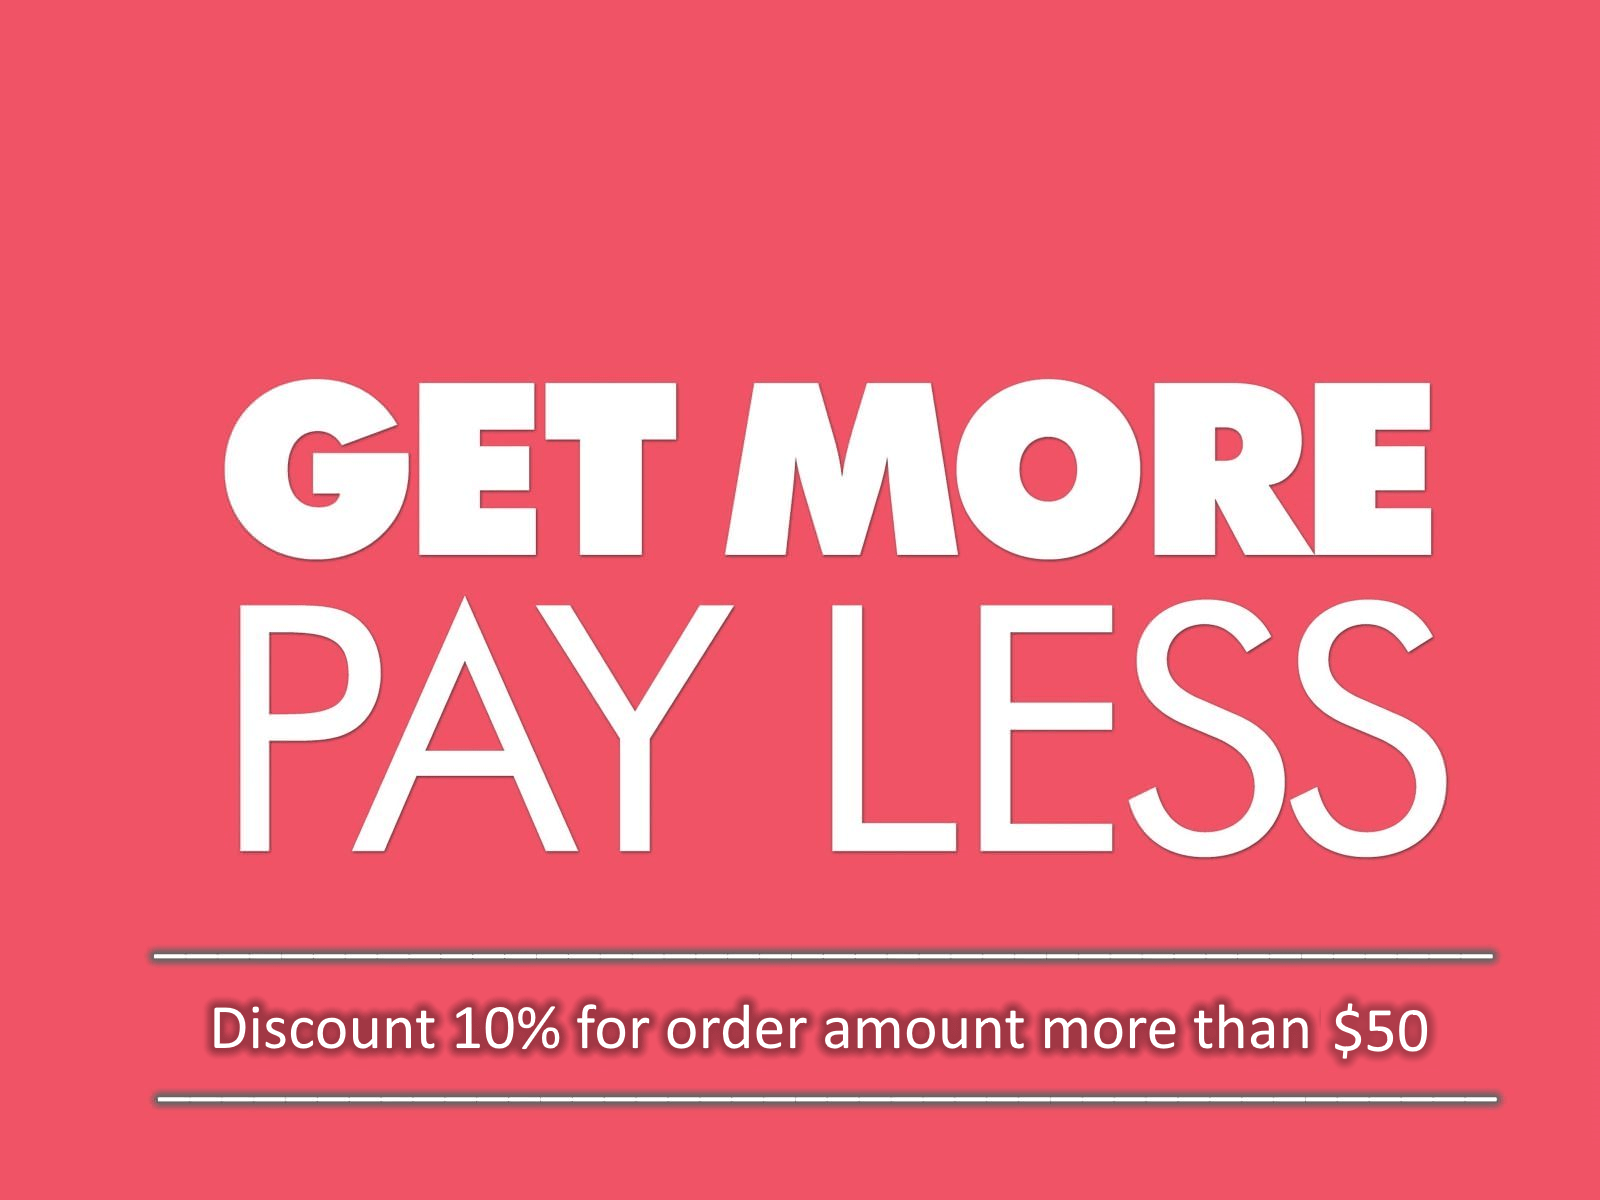 woodico.pro get more pay less reloading 1 - Get more – pay less: Reloading